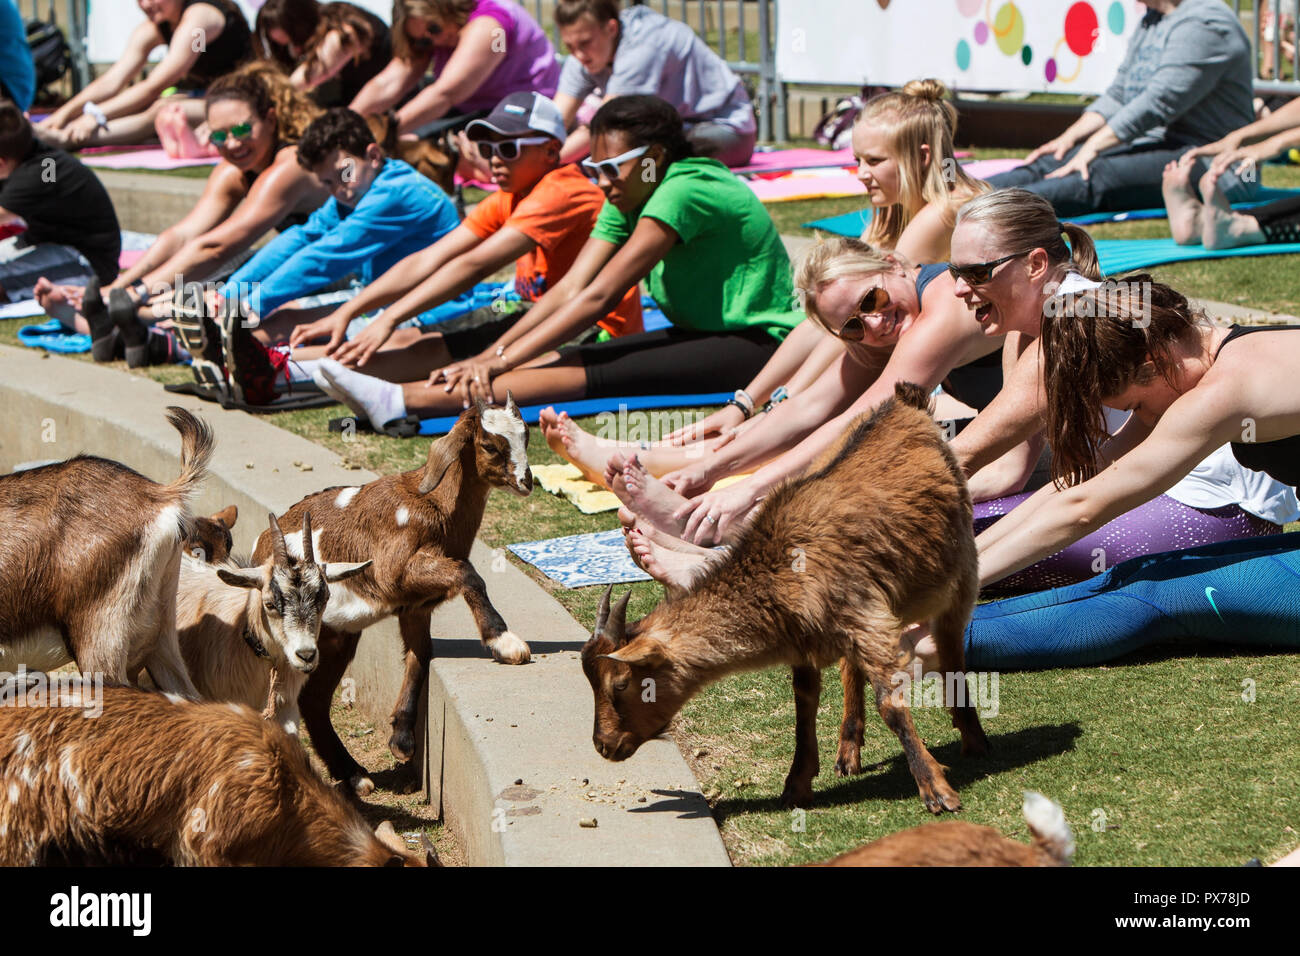 Suwanee, GA, USA - April 29, 2018:  Goats walk among people stretching in a free goat yoga event at Suwanee Towne Park on April 29, 2018. Stock Photo